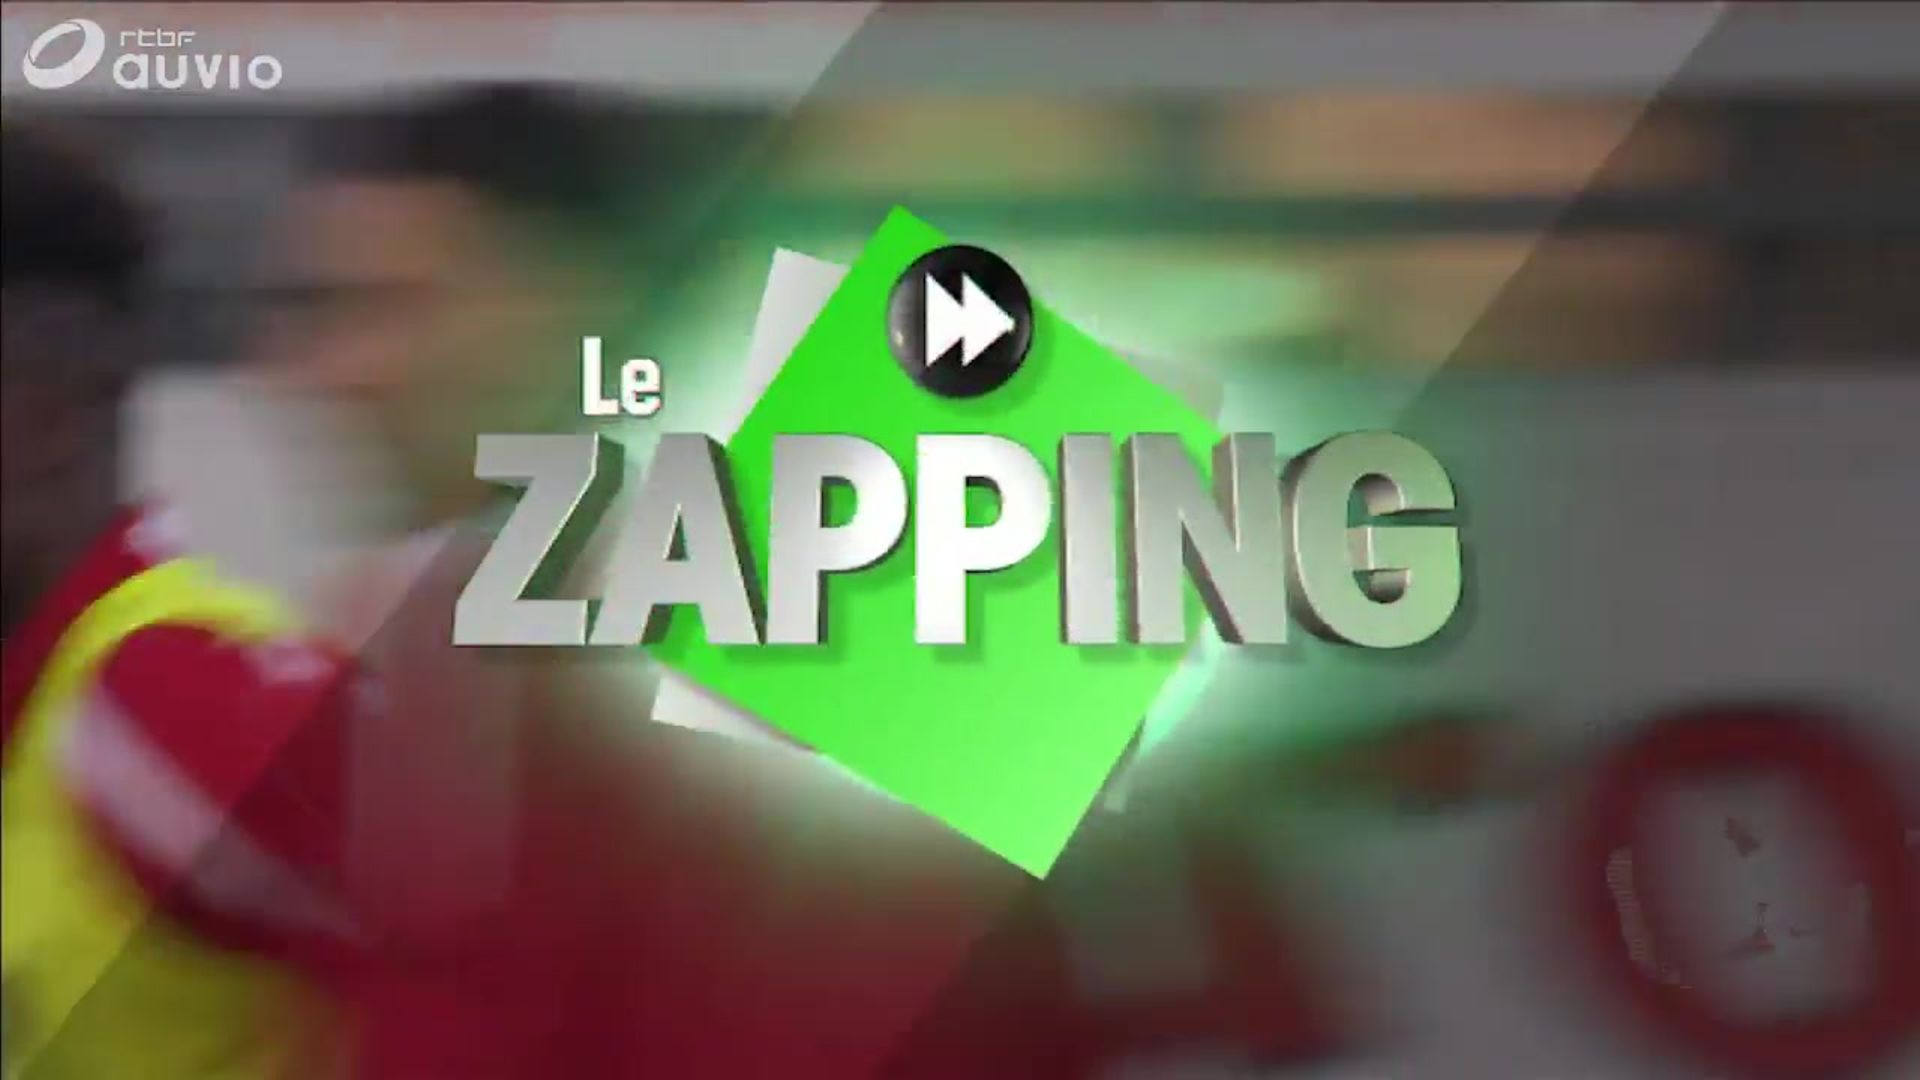 817af0397e542 https://www.rtbf.be/auvio/detail_le-zapping-au-metre?id=2470051 http ...